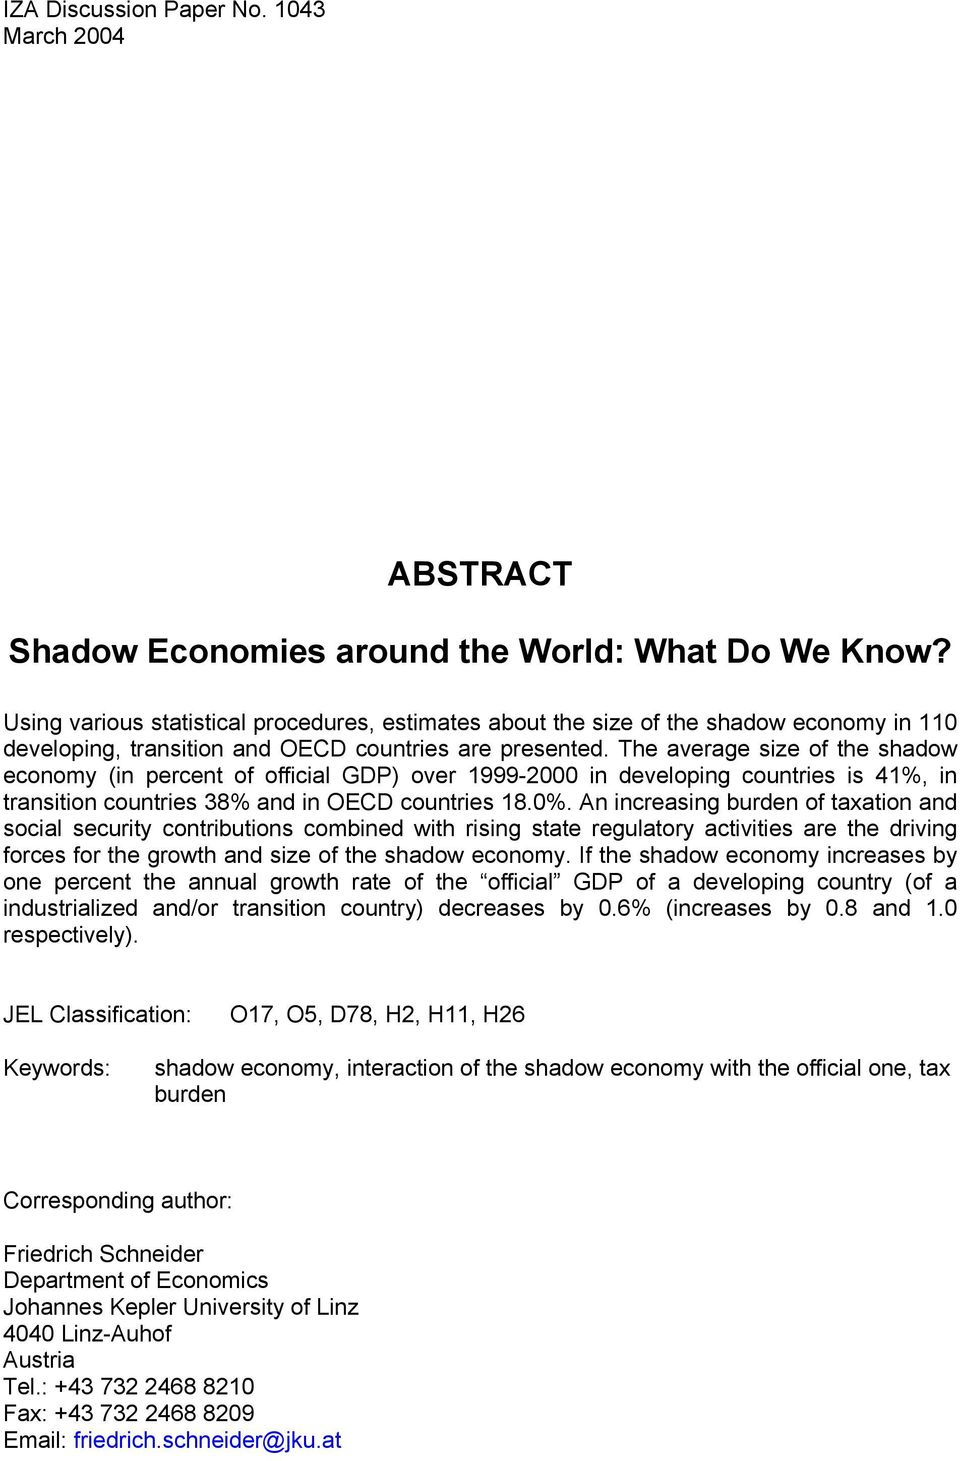 The average size of the shadow economy (in percent of official GDP) over 1999-2000 in developing countries is 41%, in transition countries 38% and in OECD countries 18.0%.